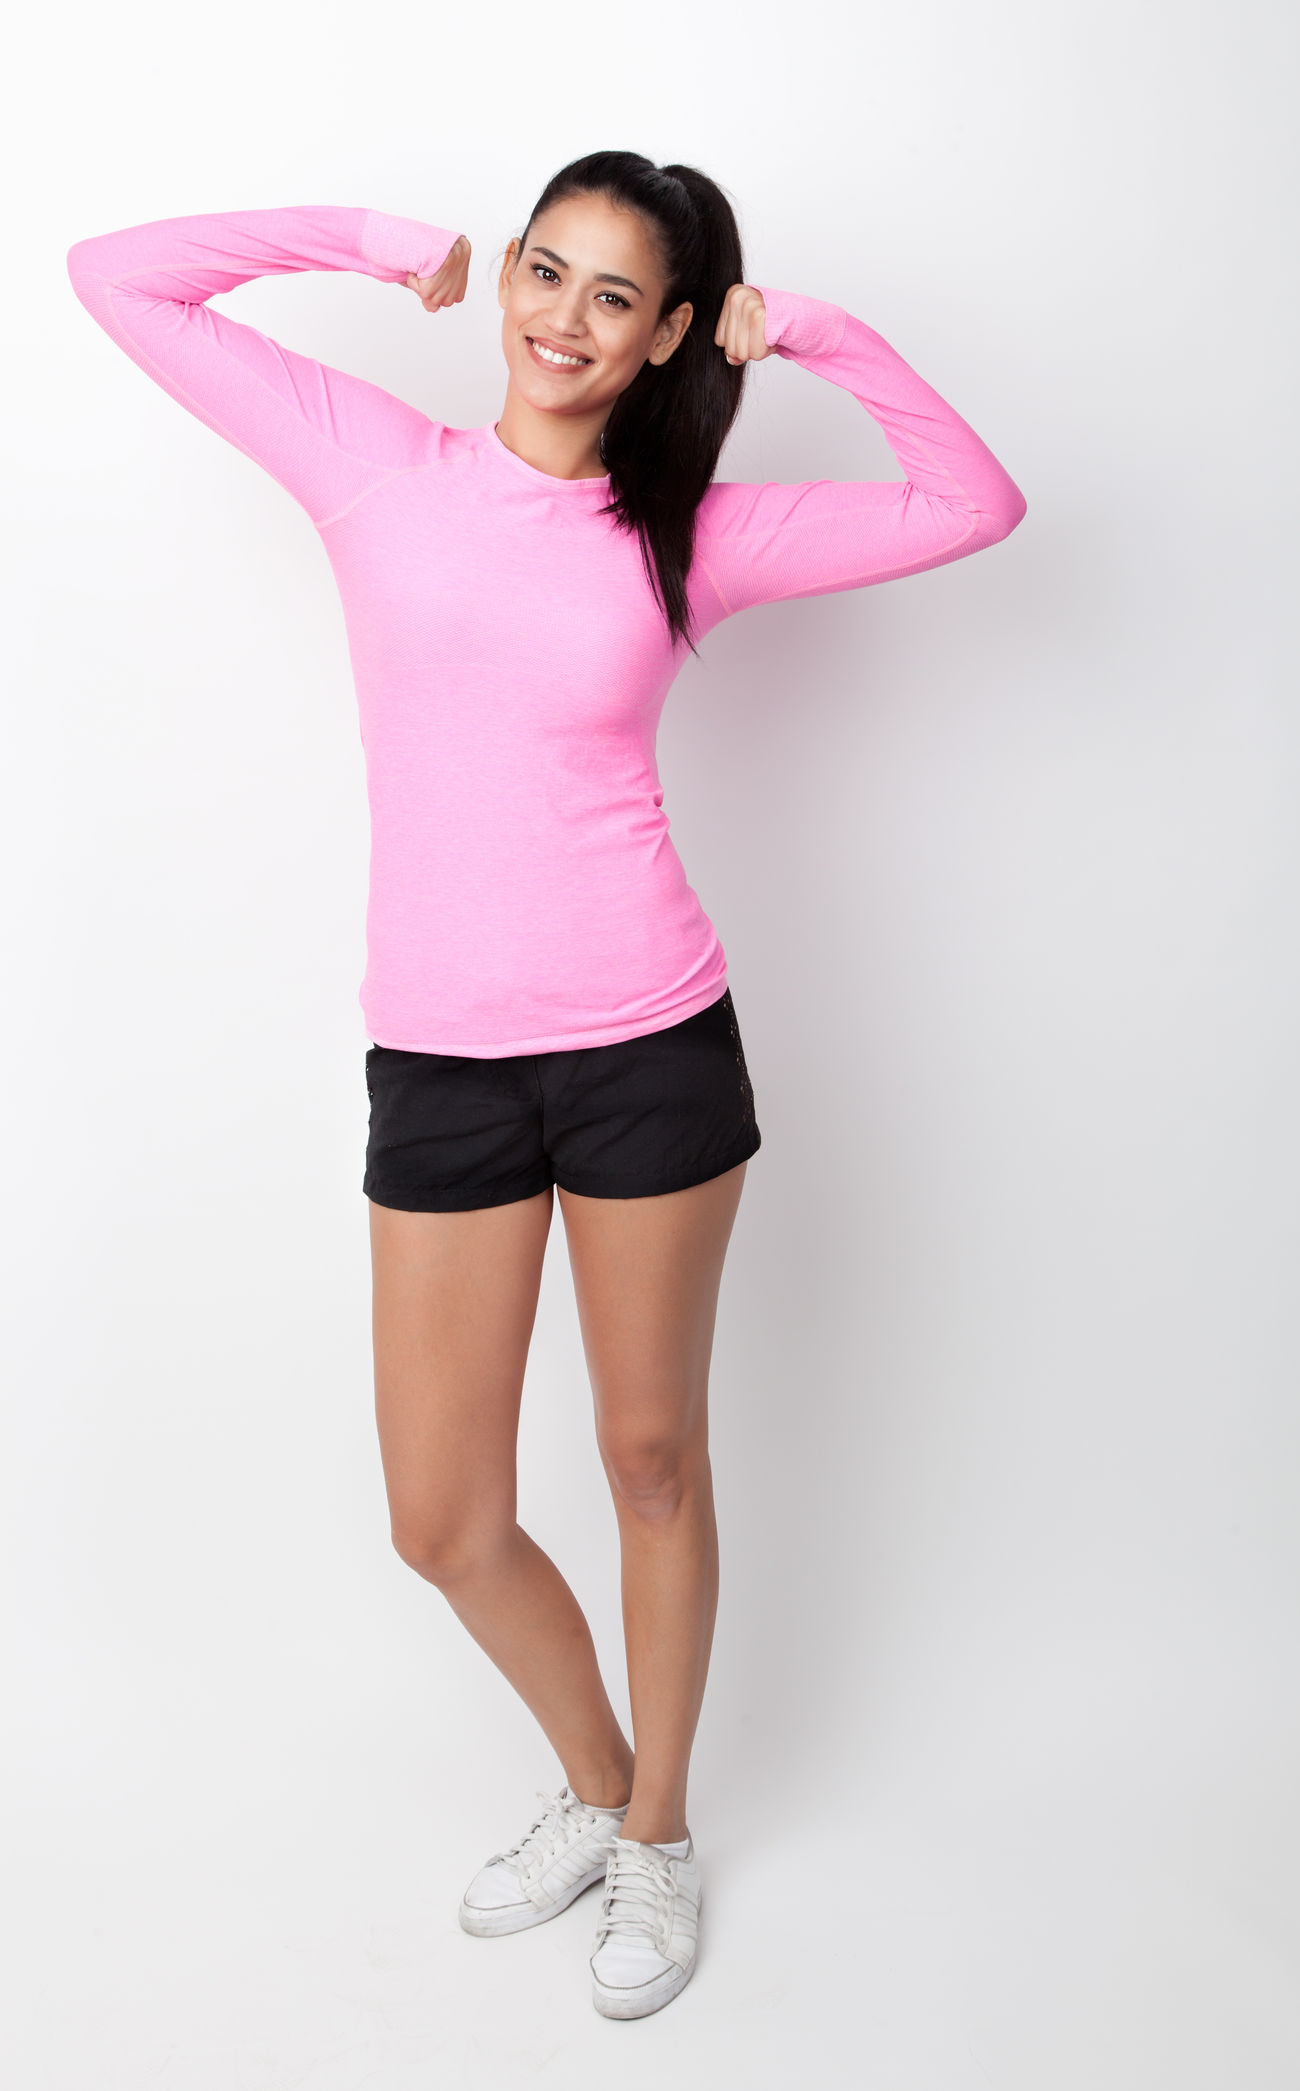 Portrait of a young woman in sport dress Attractive Beautiful Casual Clothing Cheerful Clothes Day Fashion Fit Fitness Full Girl Isolated Lady Lifestyle Model People Person Pink Shape Slim Standing Studio White Background Woman Young